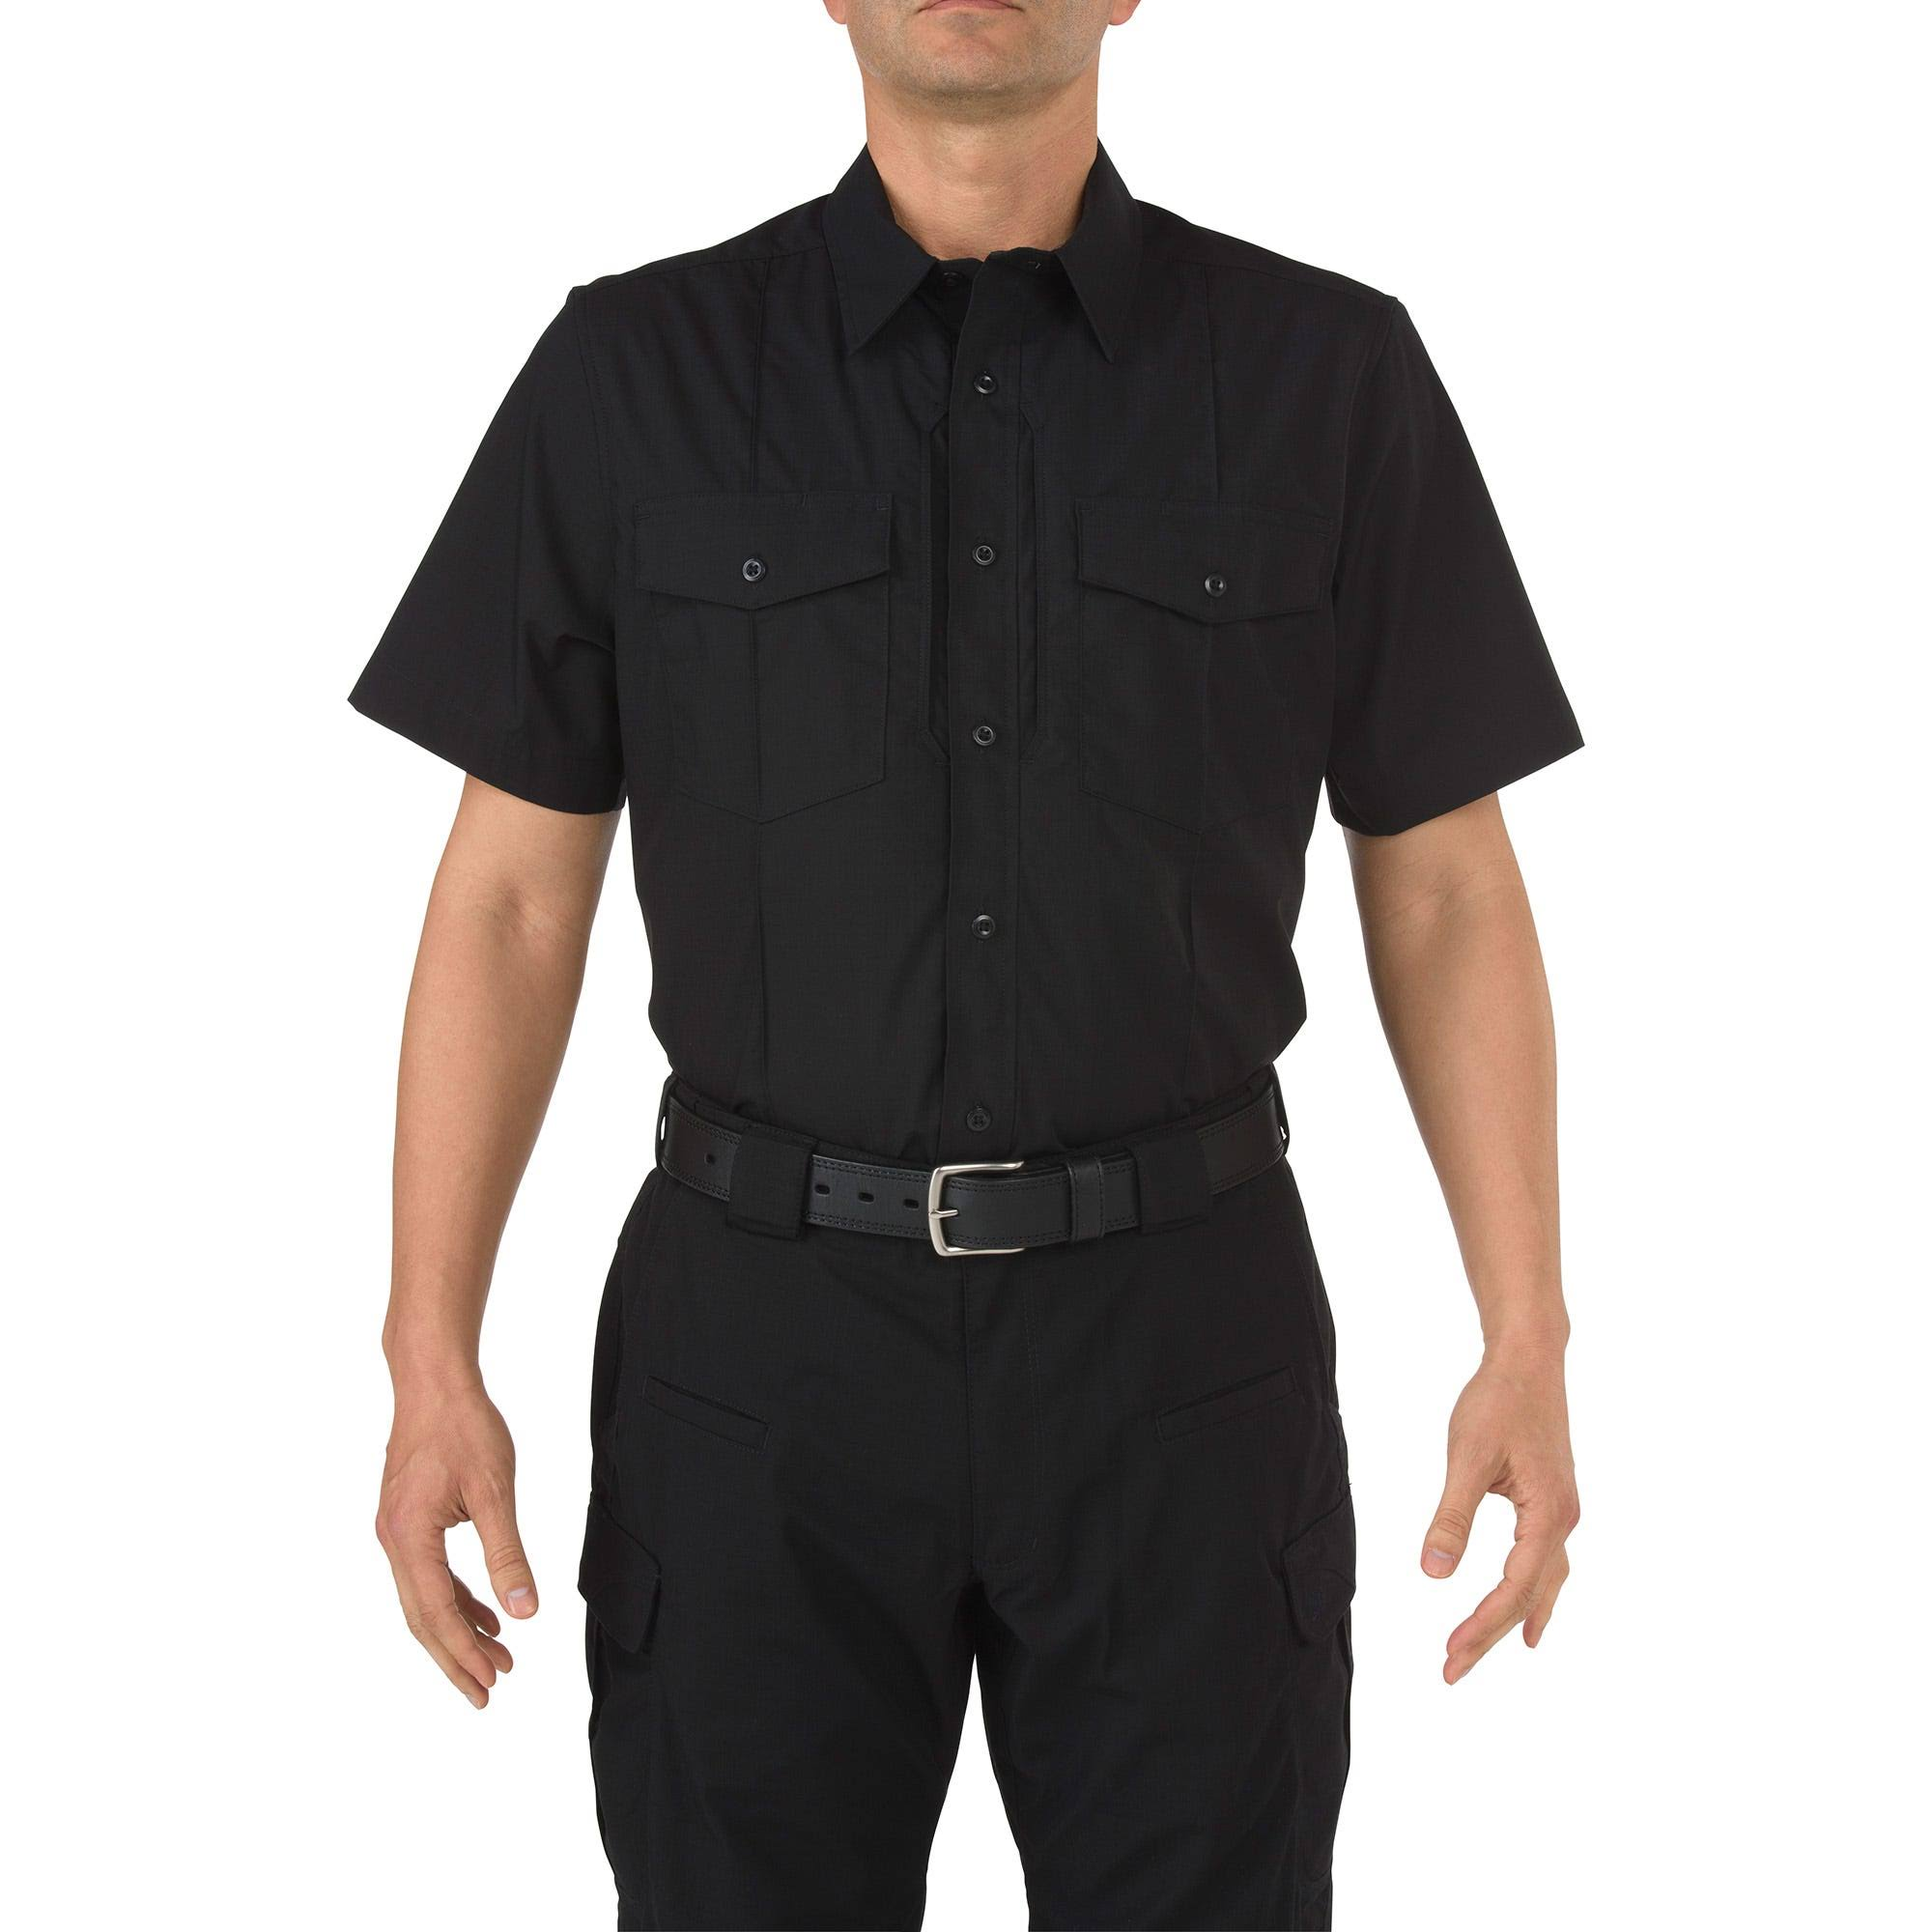 5.11 Short Sleeve Stryke PDU Class B Shirt, Men's Black